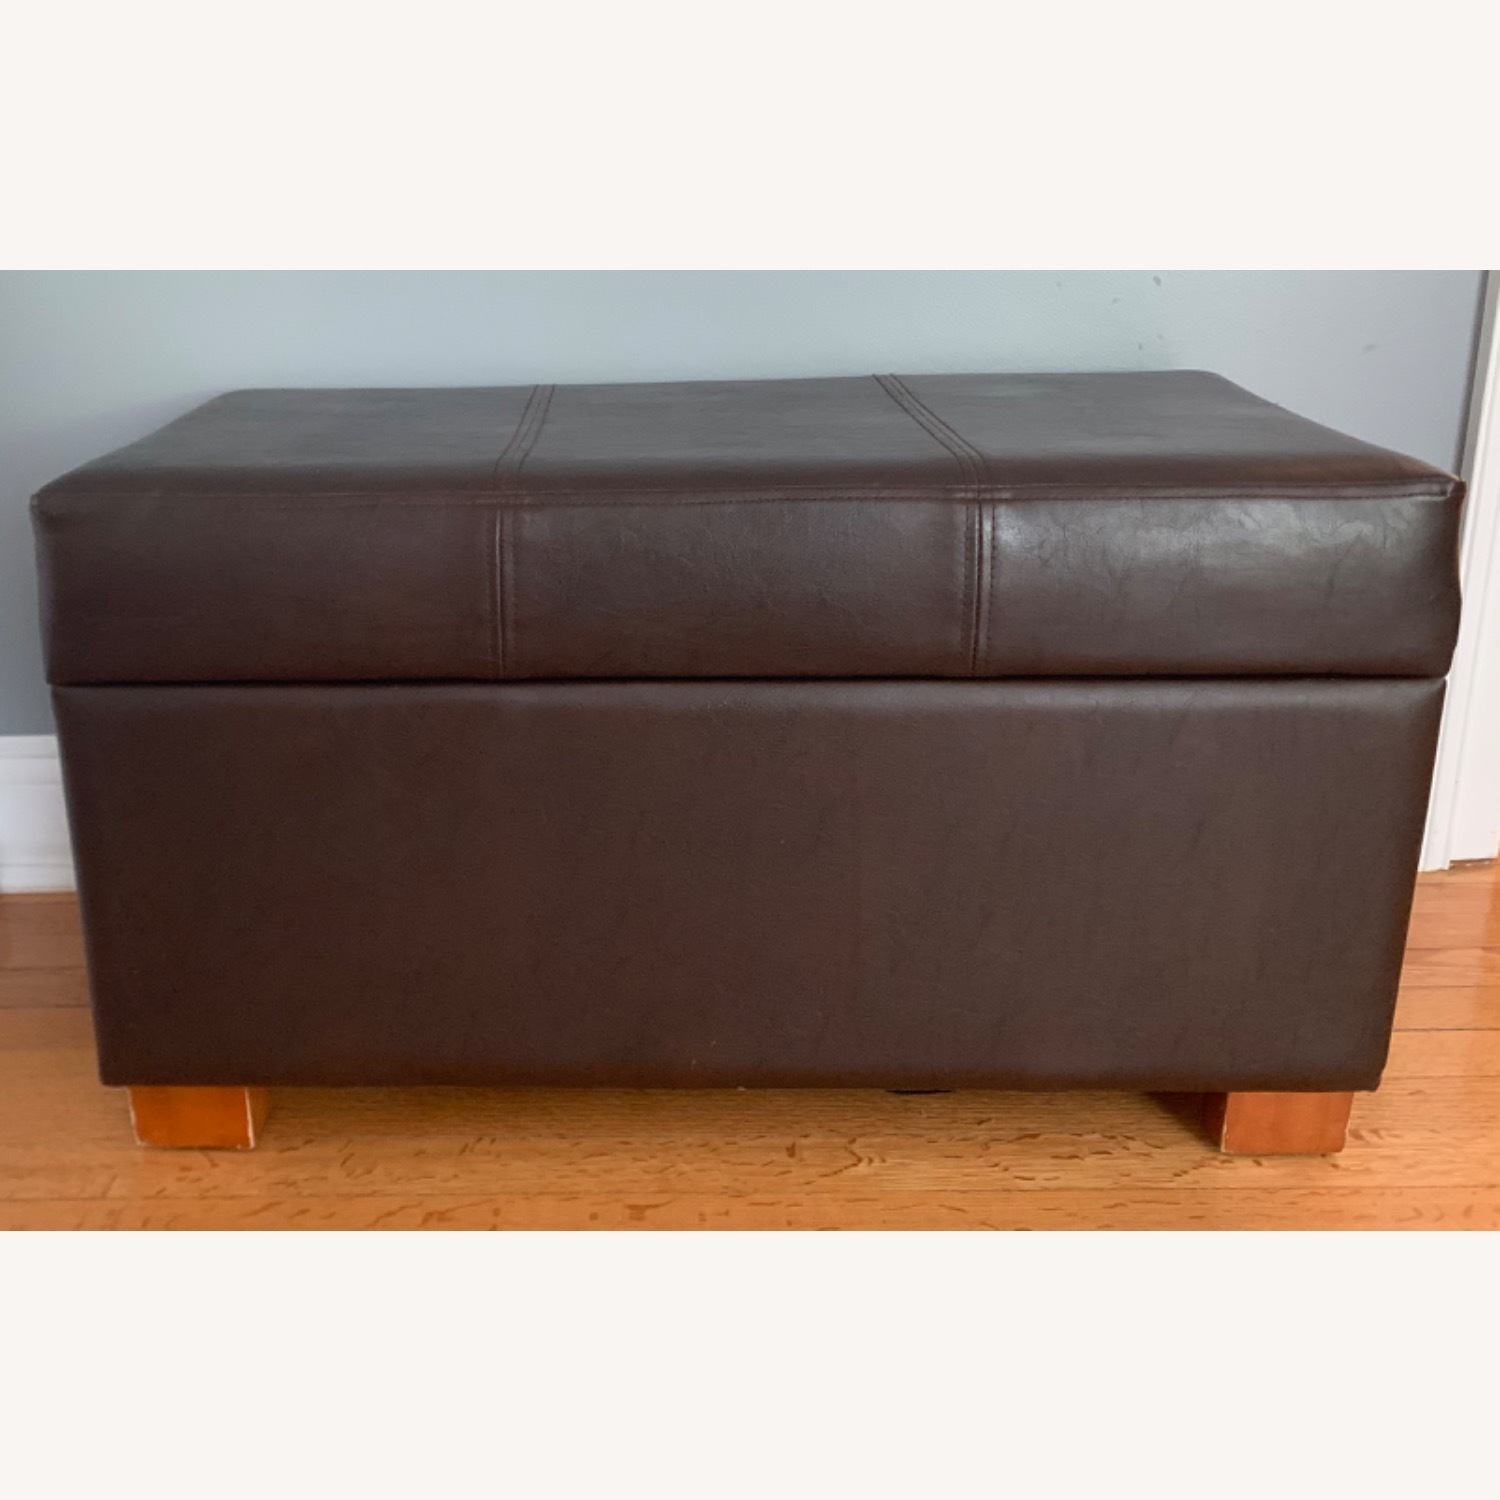 Target Faux Leather Ottoman - image-1